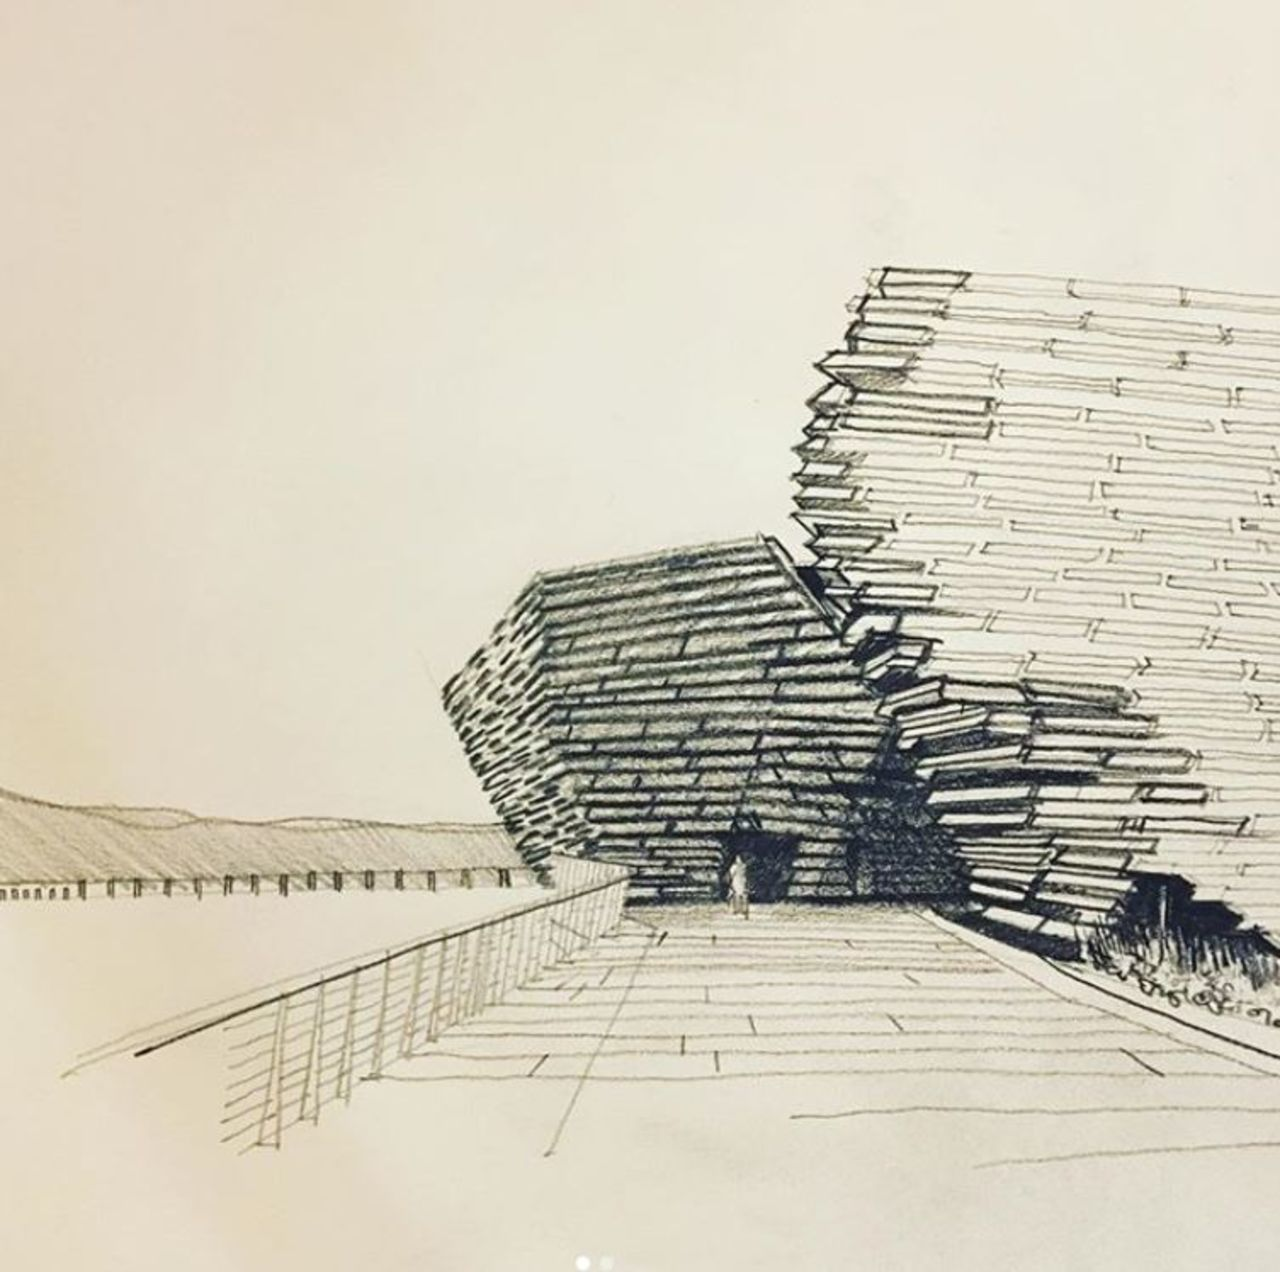 A rough but clear and well done pencil sketch of V&A Dundee on the water's edge.